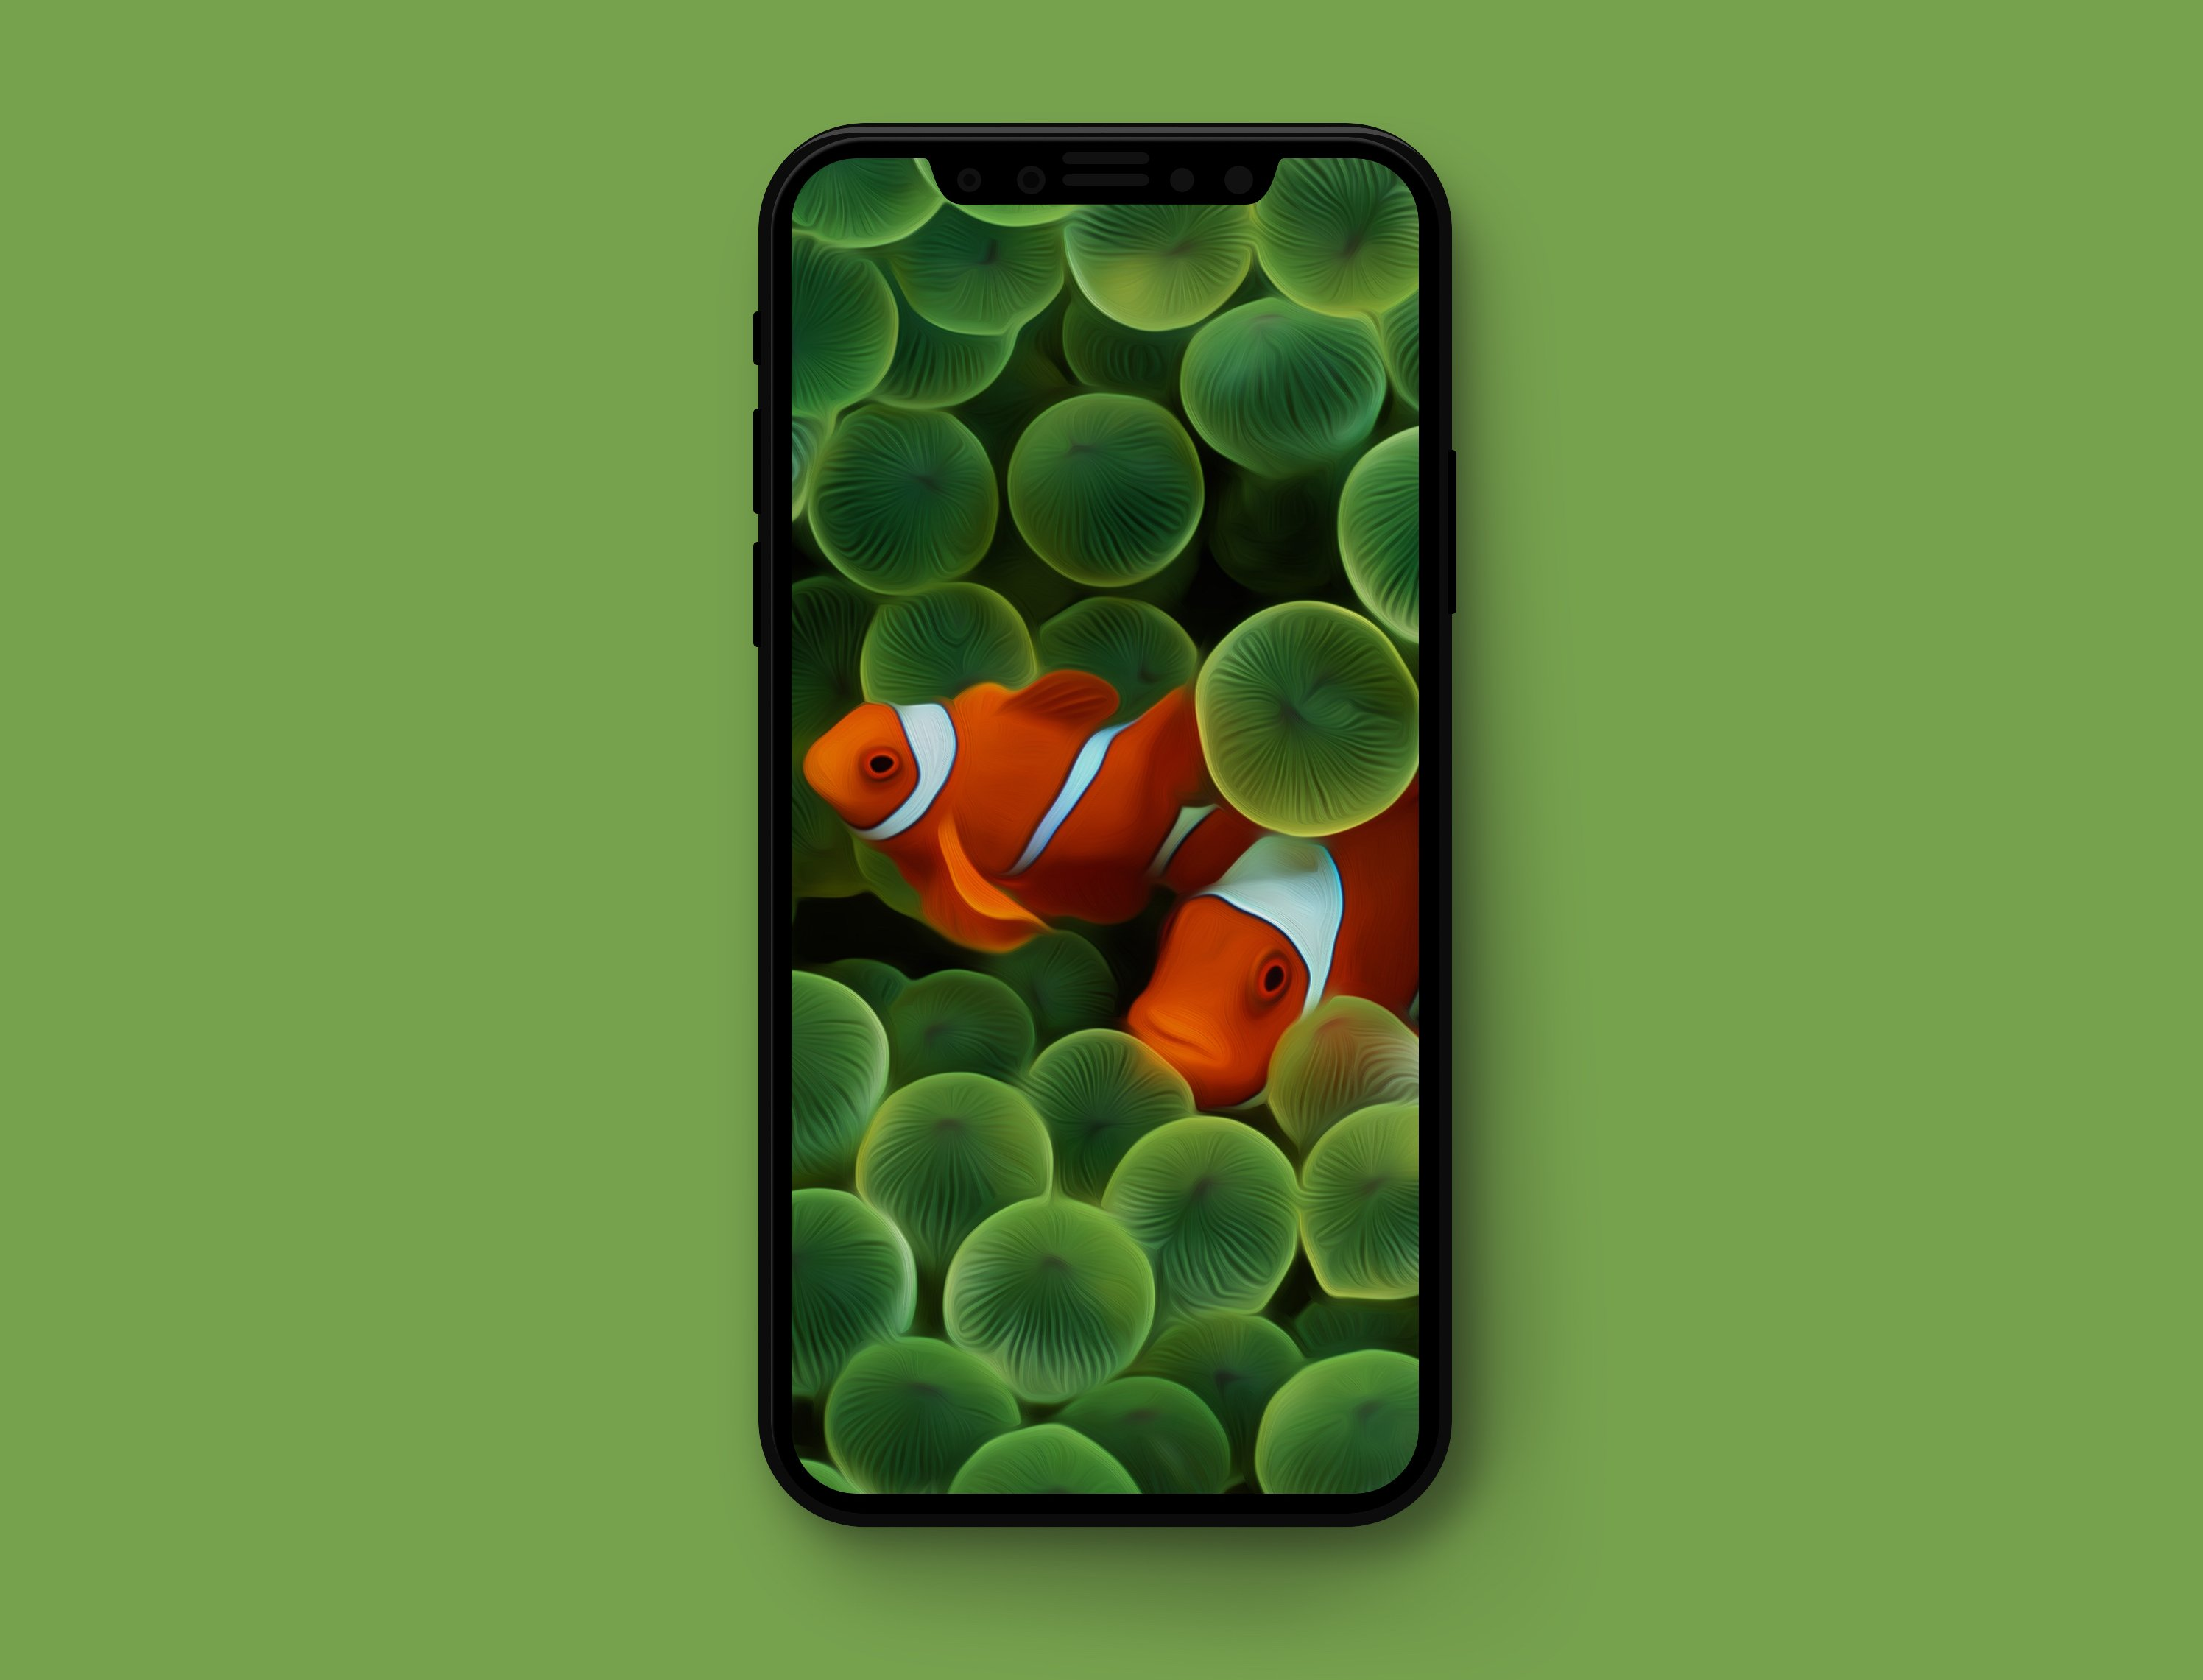 Original Apple wallpapers optimized for iPhone X 2992x2282